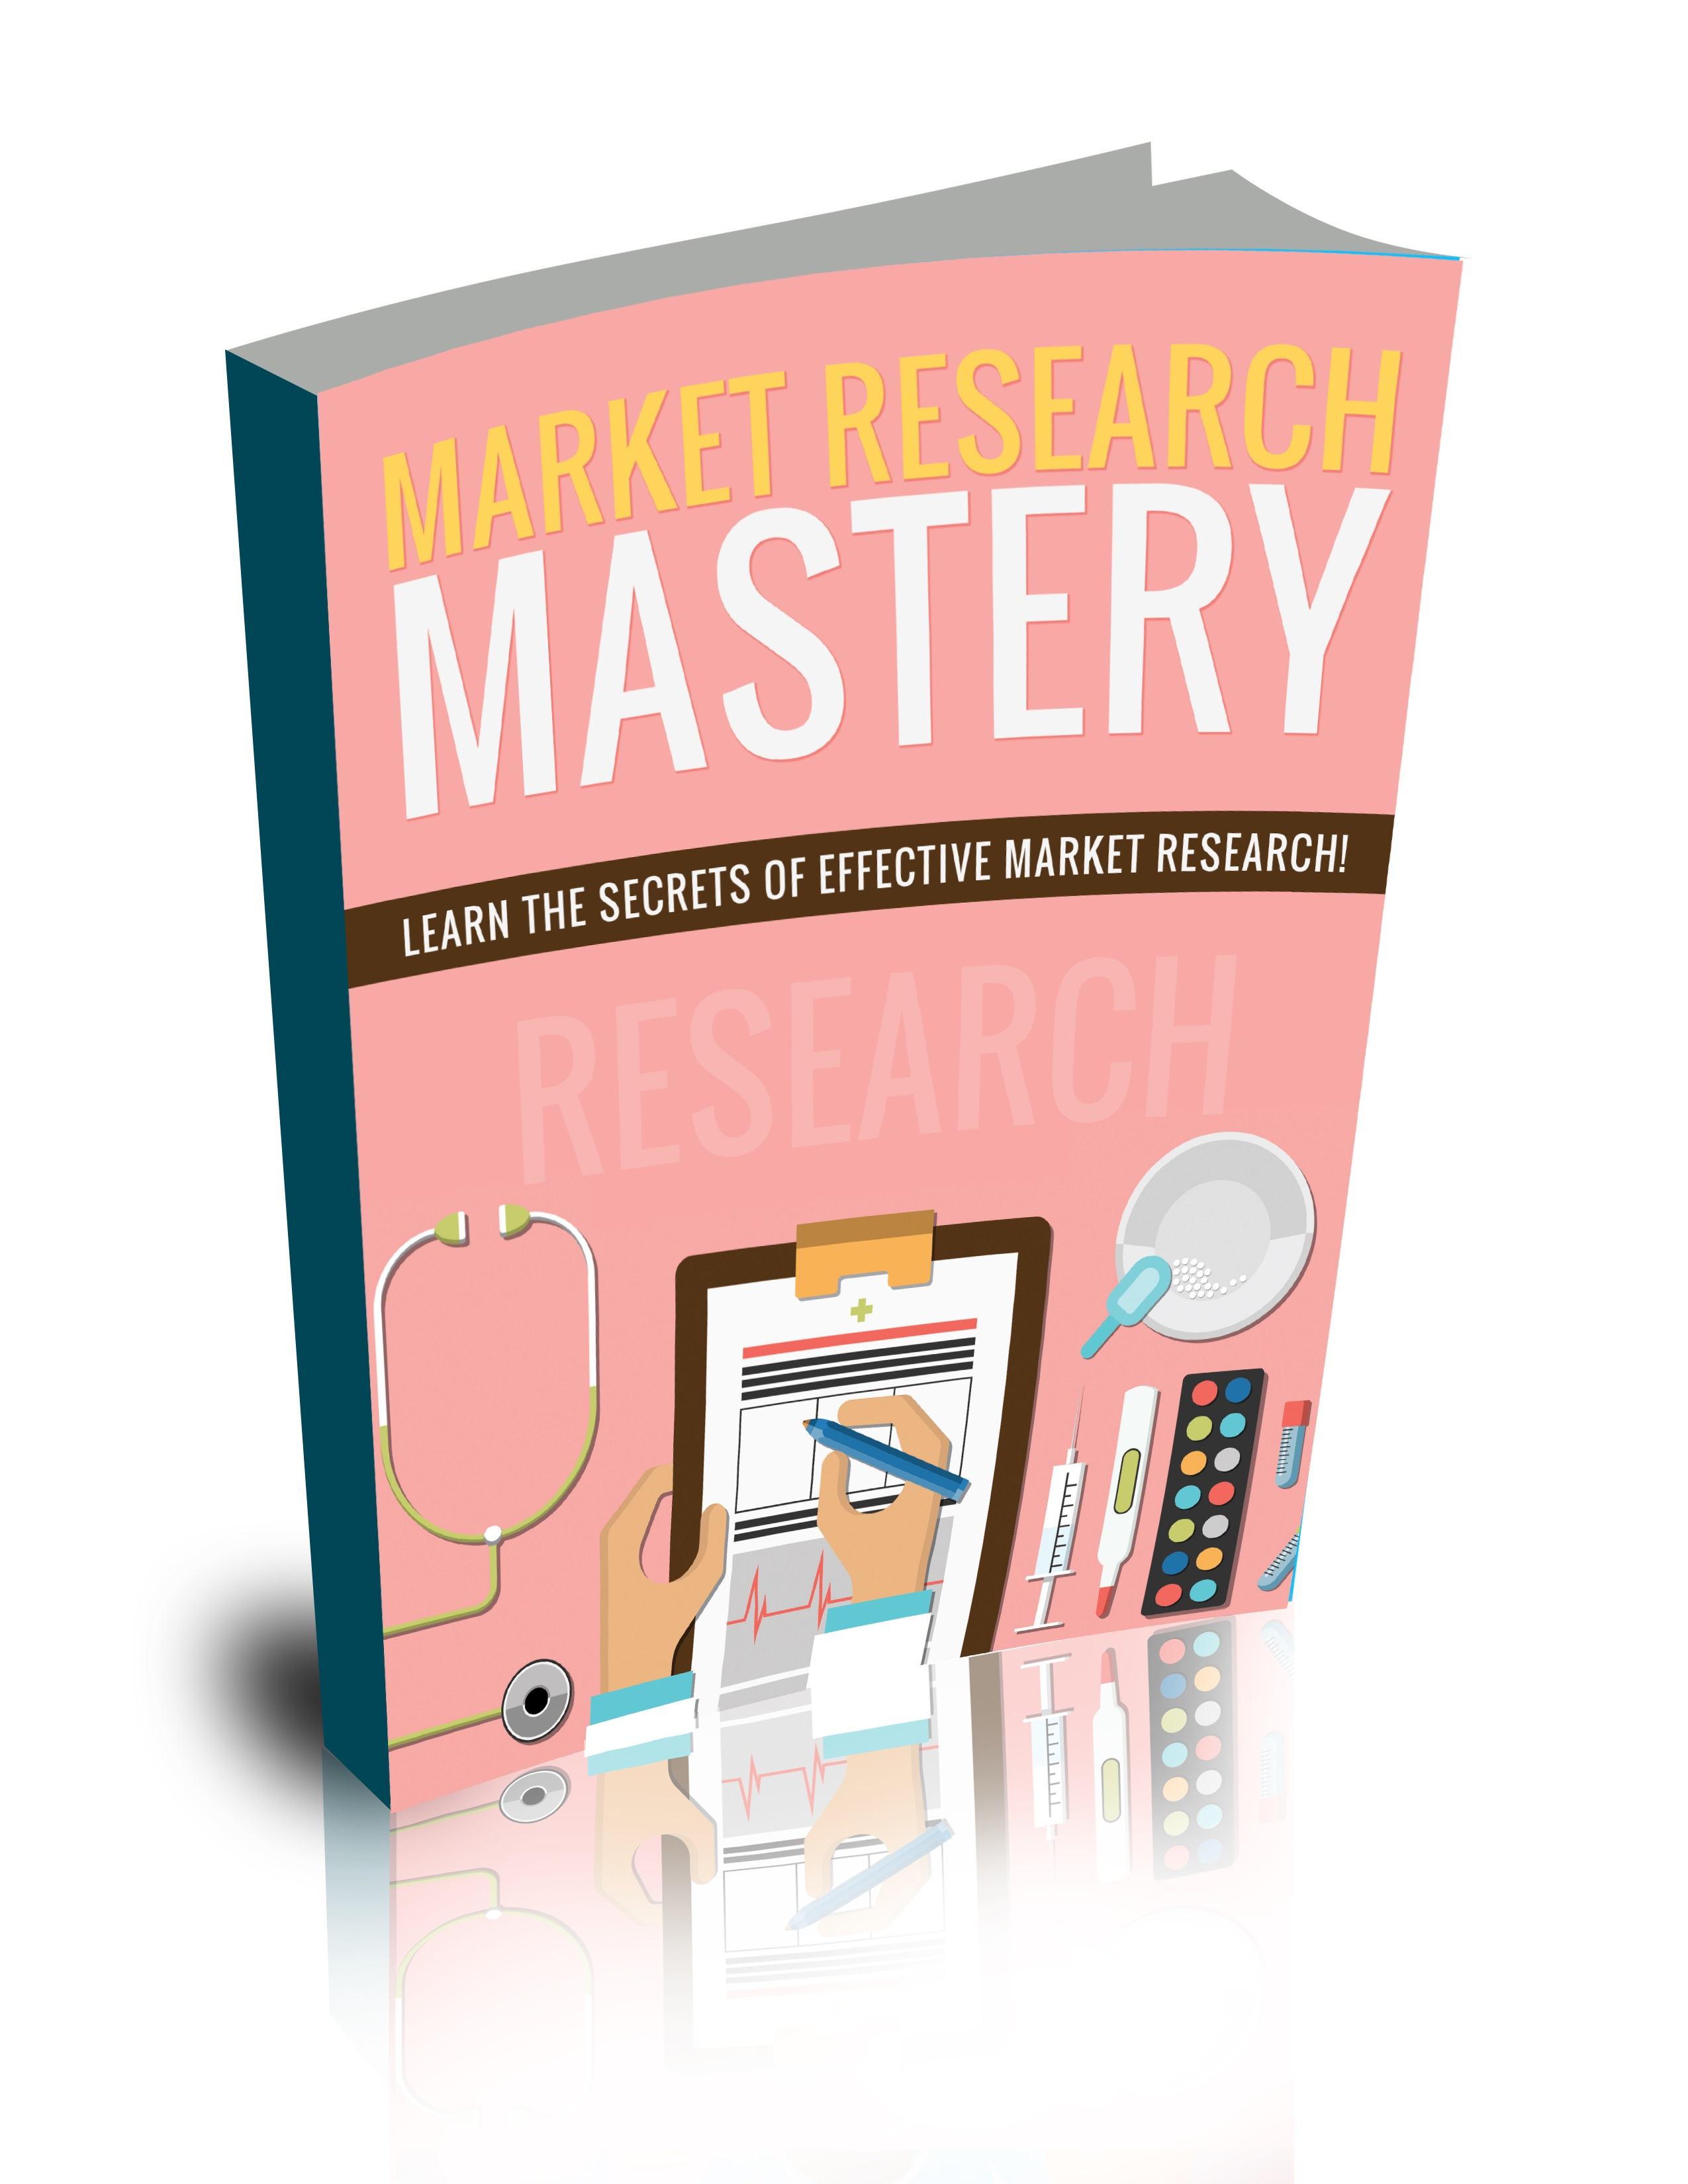 Market Research Mastery Package